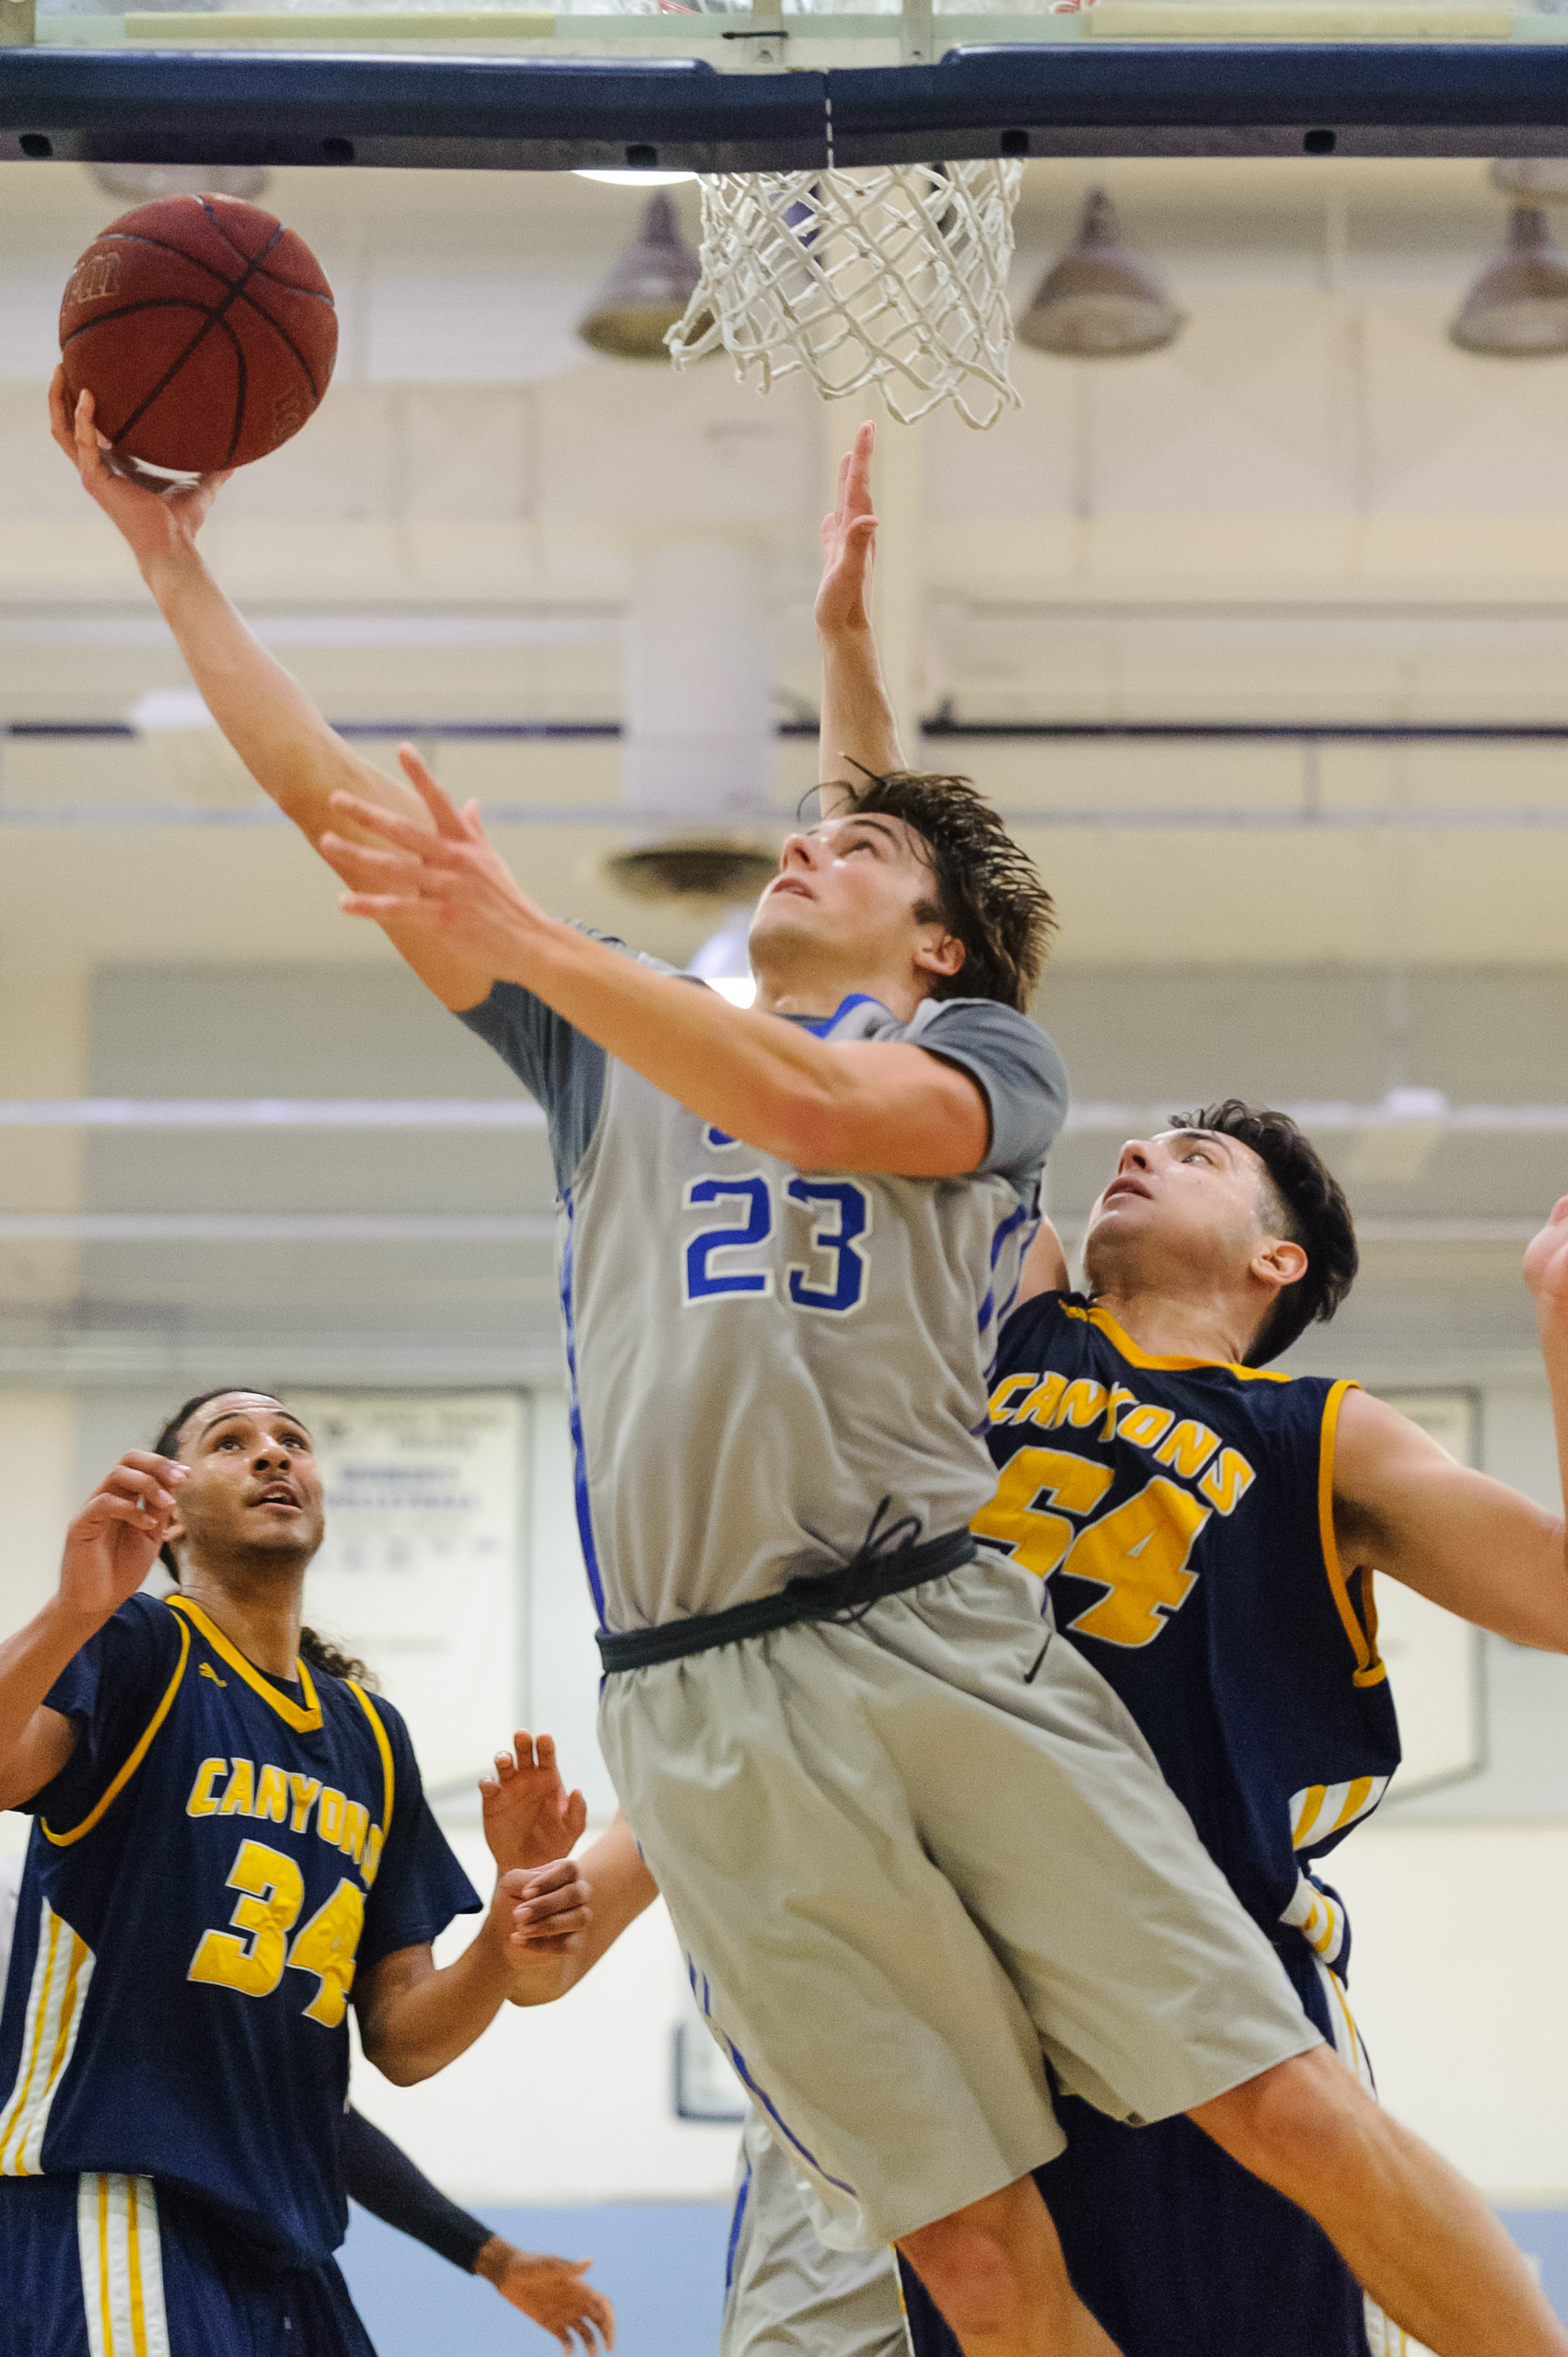 Forward Dayne Downey (23,Middle) of Santa Monica College goes up for a reverse layup while guarded by Anthony Simone (54,Right) of the College of the Canyons. The Santa Monica College Corsairs lose the game 74-72 to the College of the Canyons Cougars. The game was held at the SMC Pavilion at the Santa Monica College Main Campus in Santa Monica, Calif.. February 10, 2018. (Photo by: Justin Han/Corsair Staff)